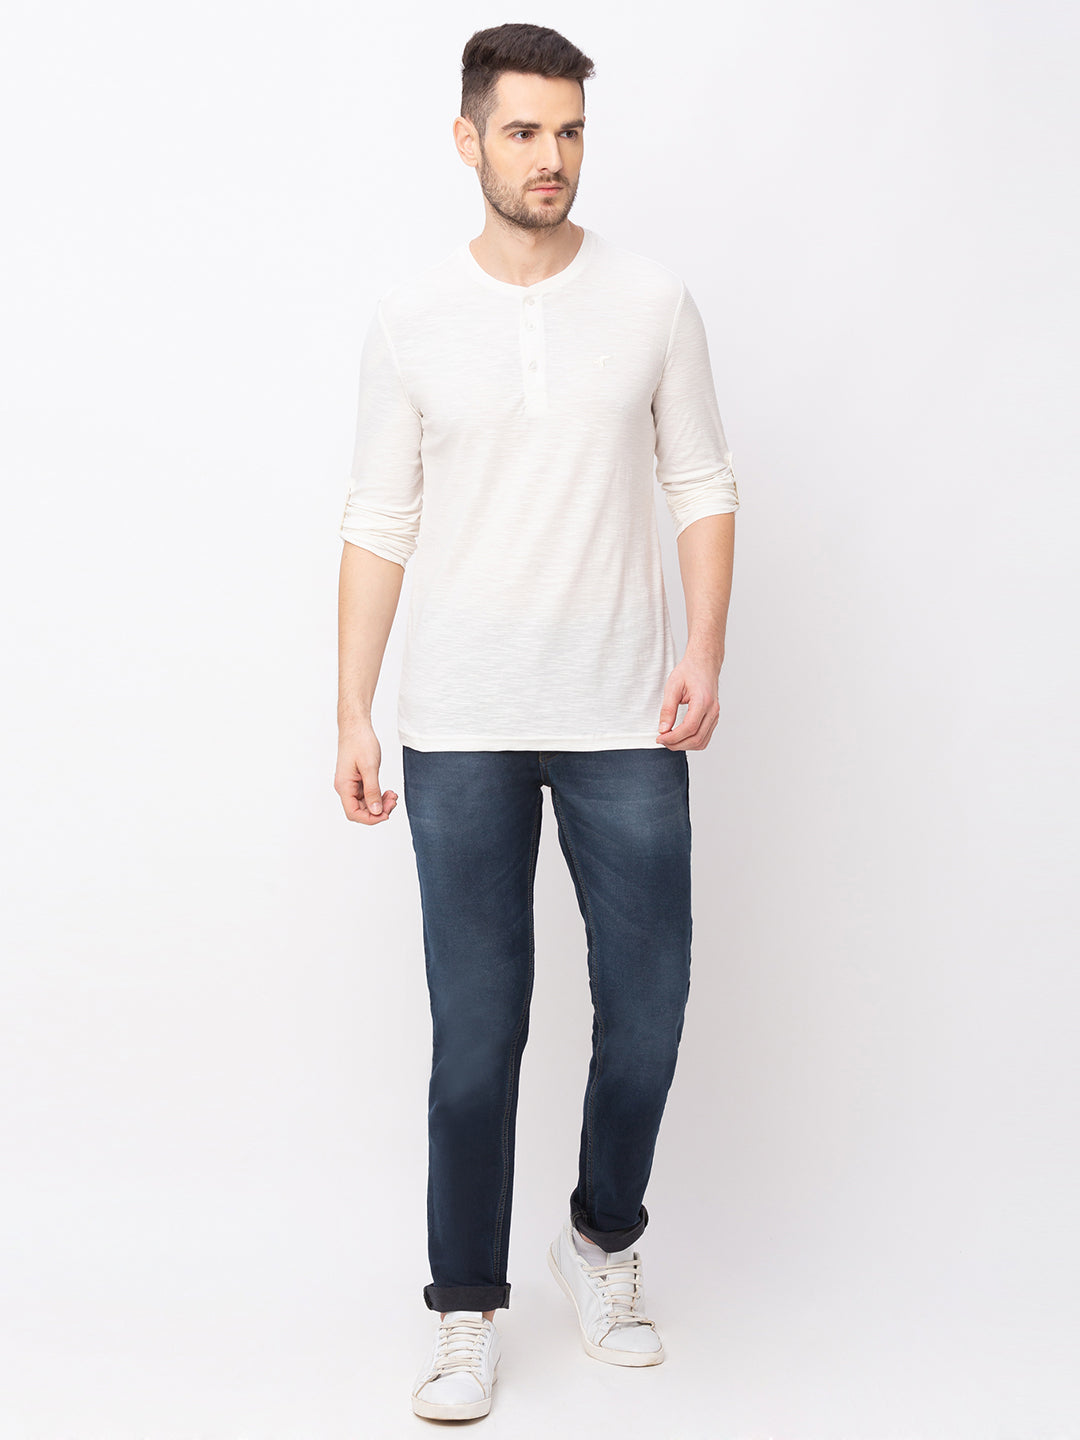 Globus Off white Solid T-Shirt-5